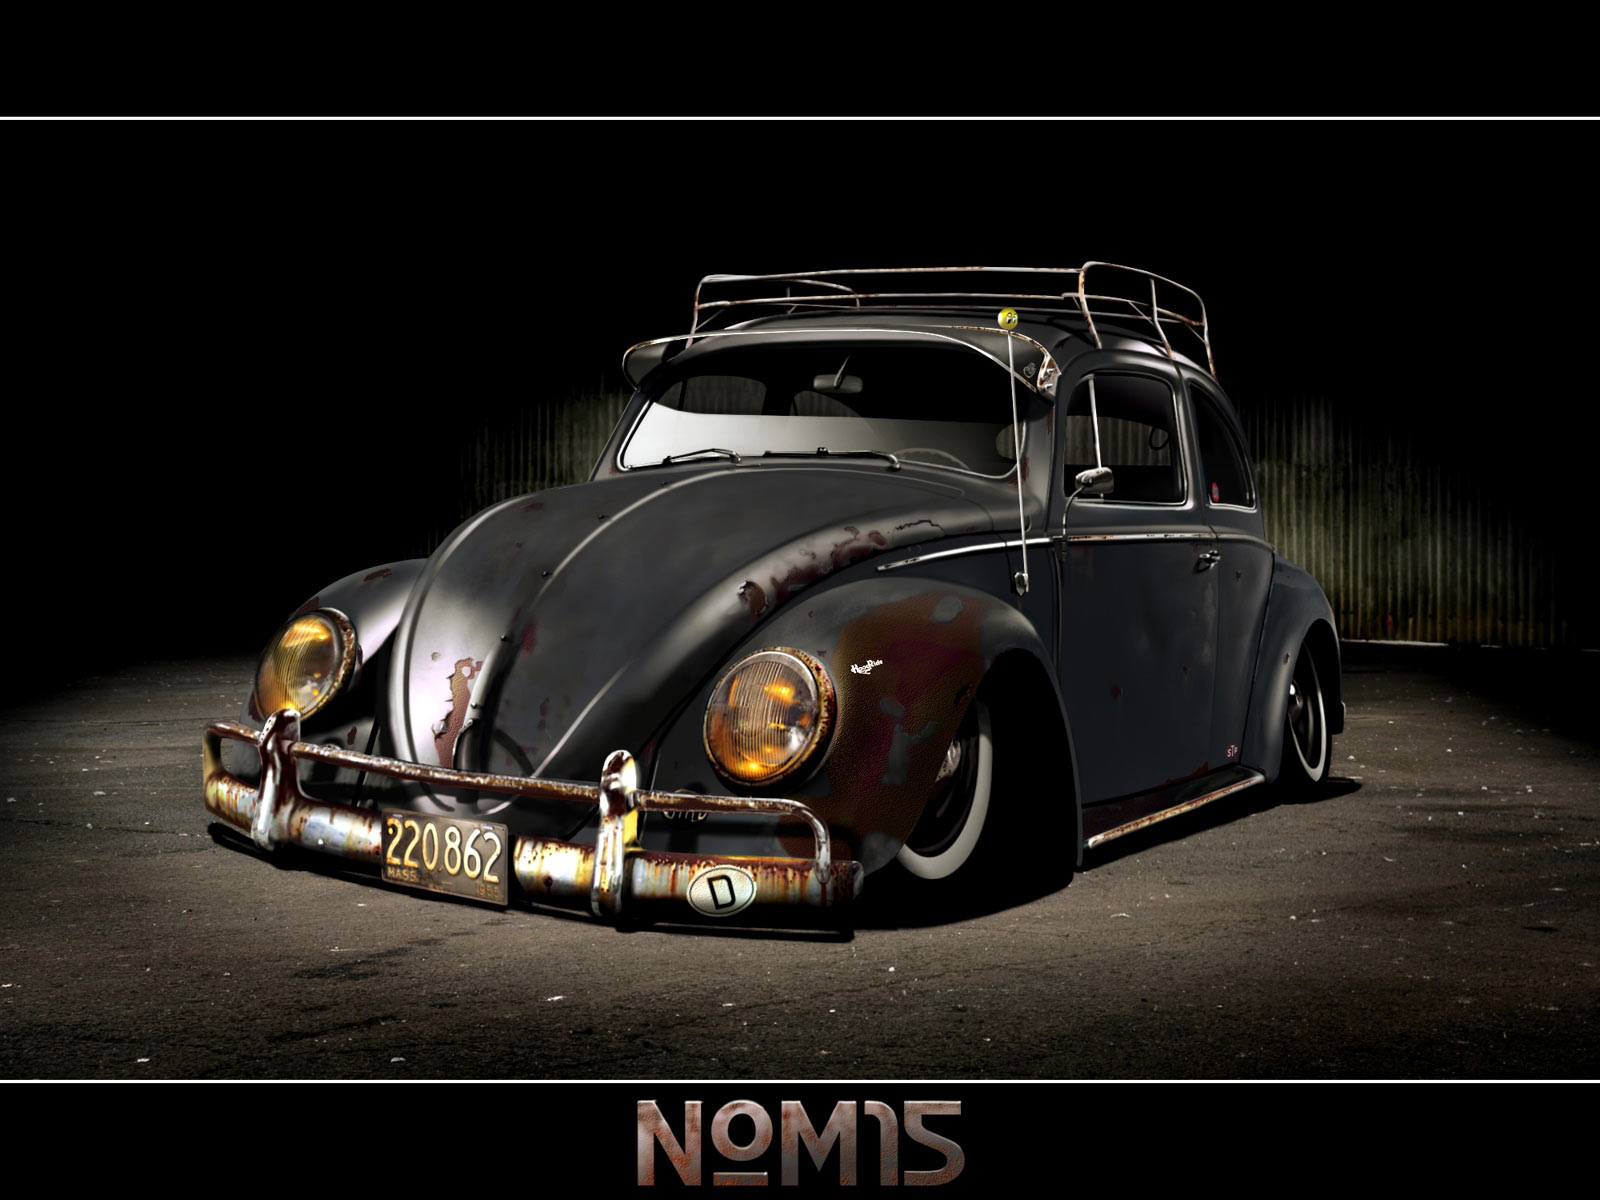 cars wallpapers for desktopCool cars pictures for desktopCool cars 1600x1200